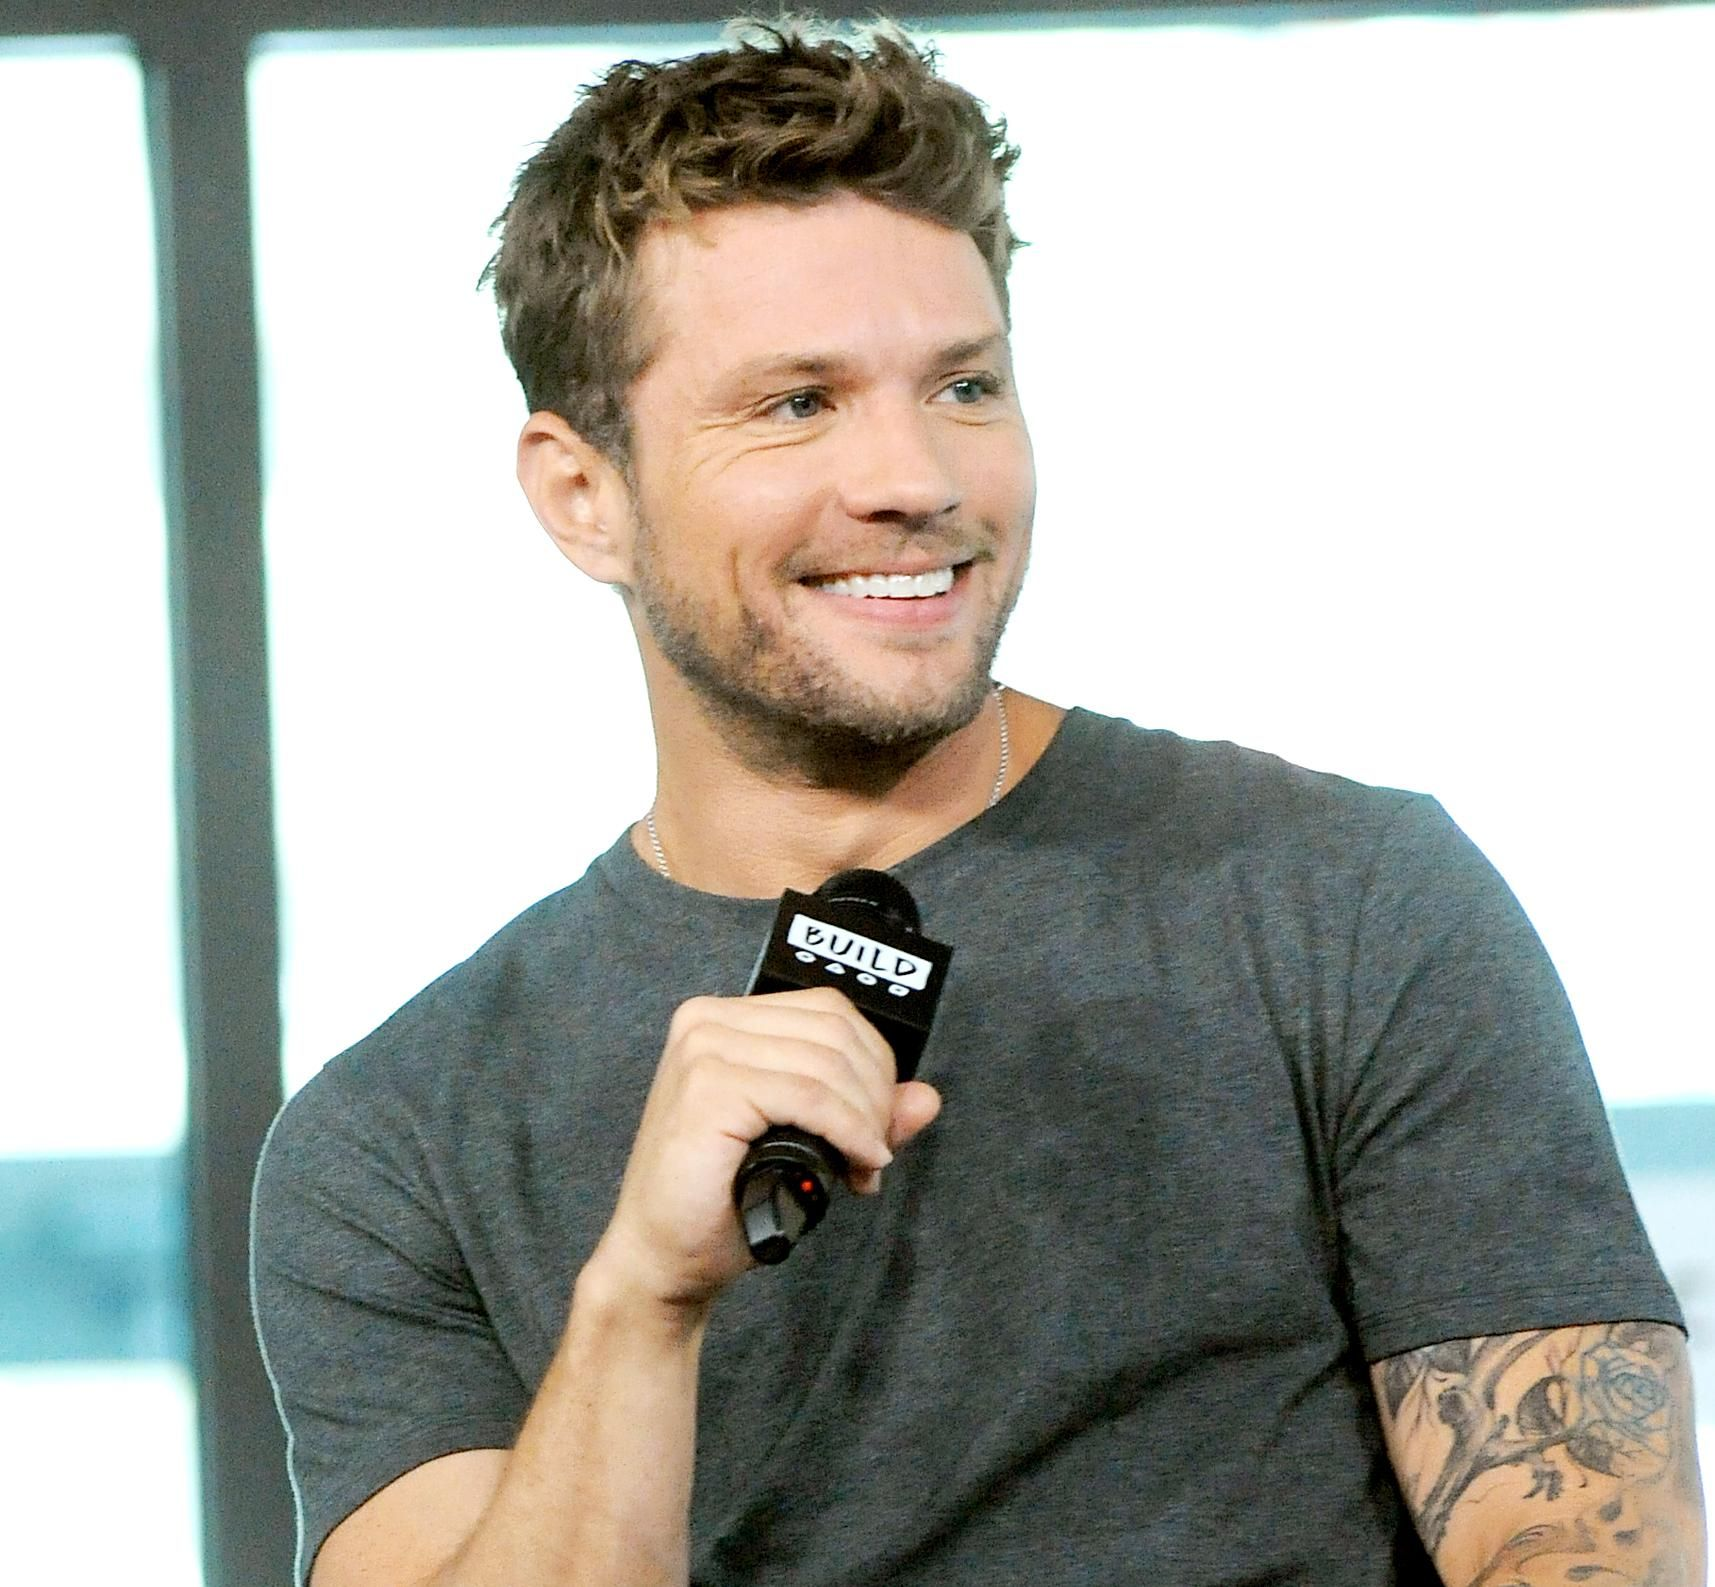 Ryan Phillippe #handsome #hot #sexy #celebrity #hunk